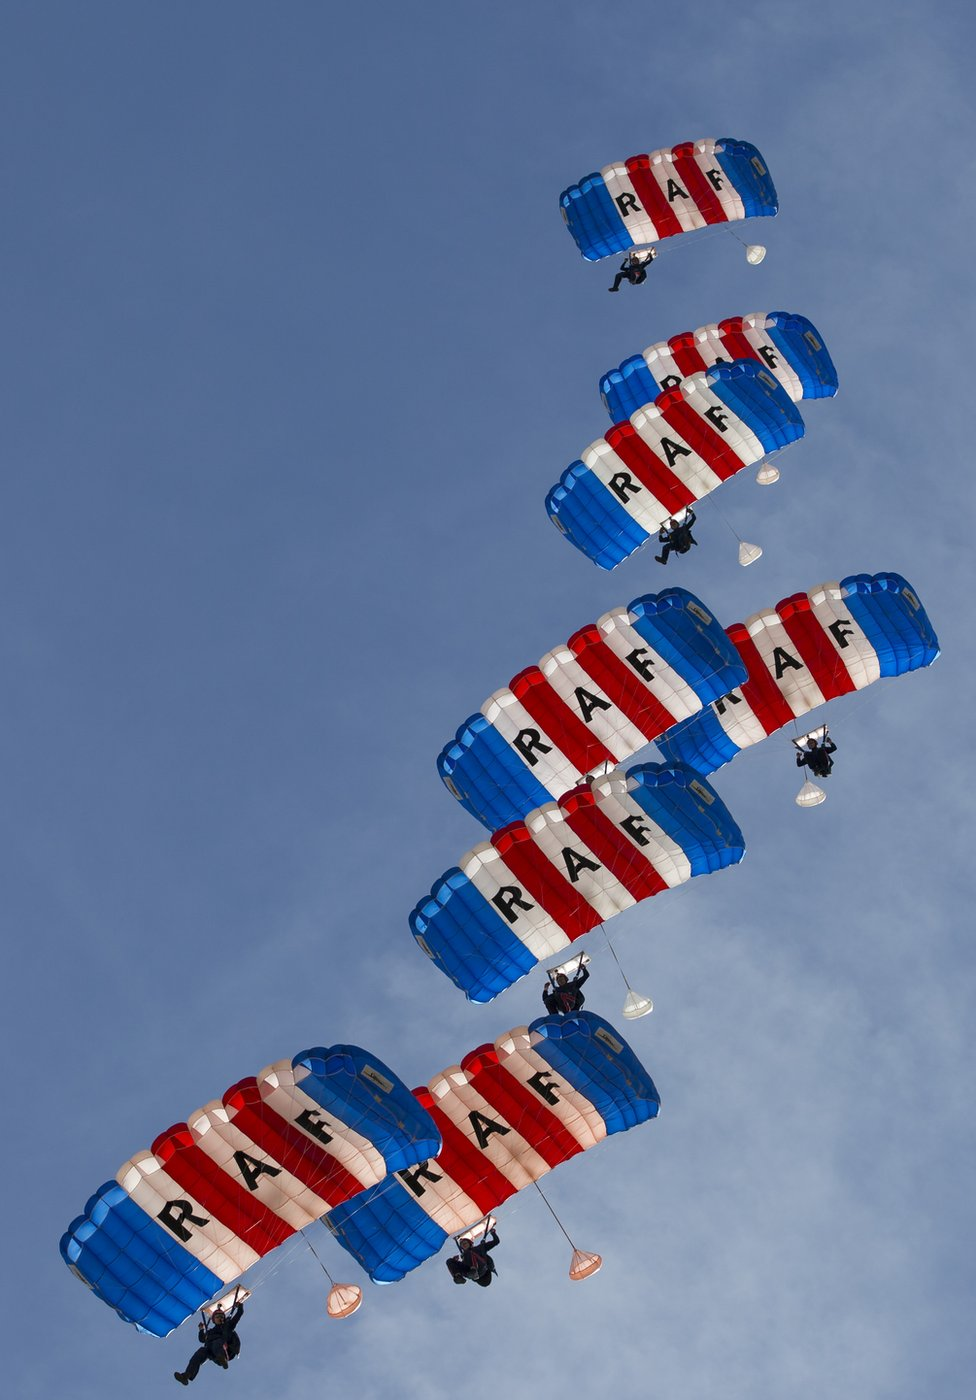 RAF Falcons Display team practice jumps at the Lake Elsinore sky diving centre, California.